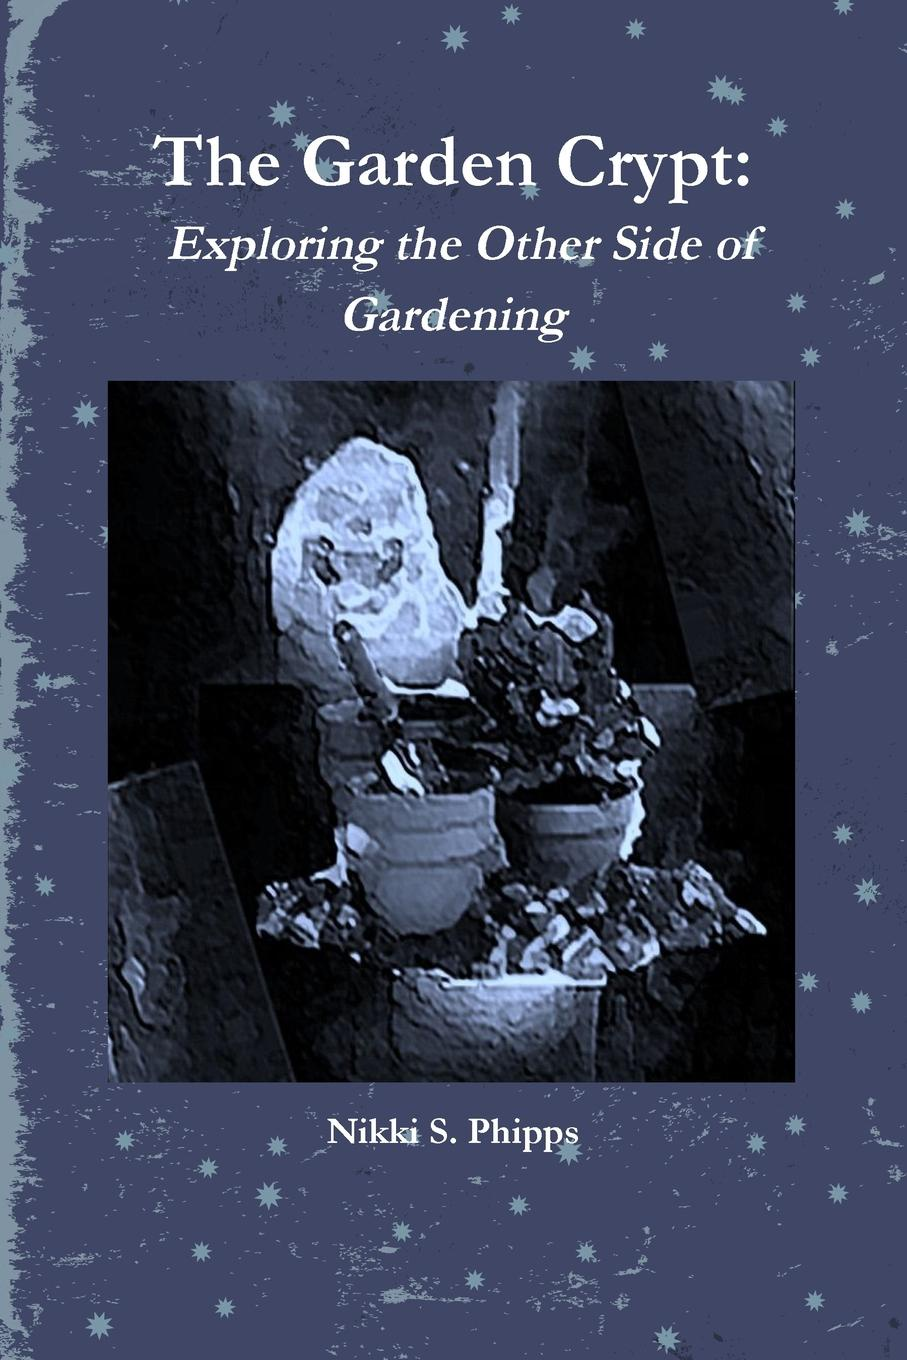 Nikki S. Phipps The Garden Crypt. Exploring the Other Side of Gardening yoshikawa hideaki the other side of secret vol 3